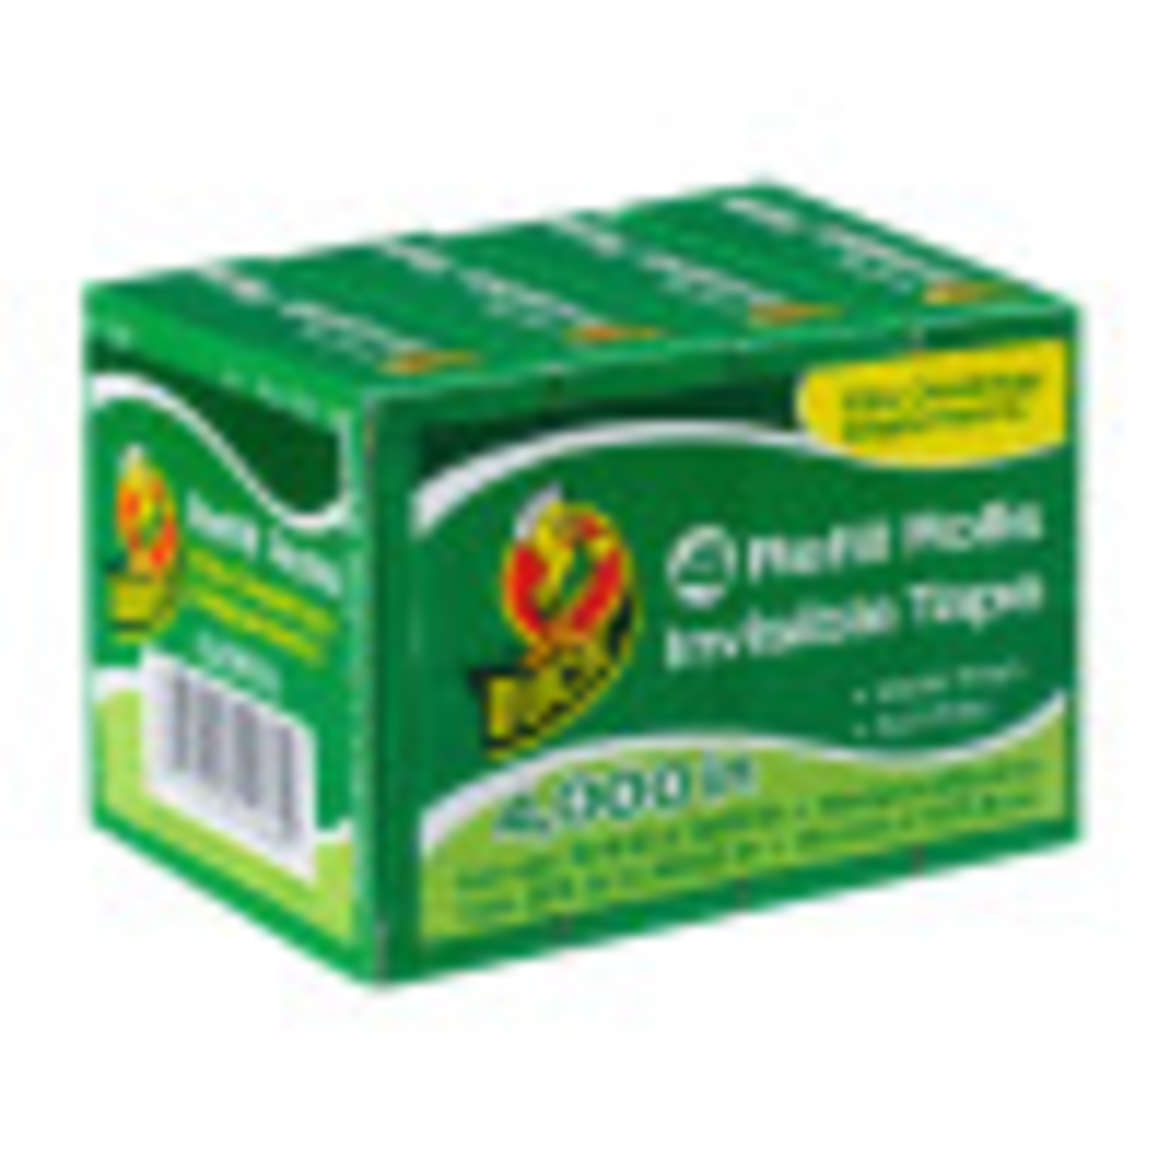 Duck® Brand Matte Finish Invisible Tape Refill Pack - Clear, 4 pk, .75 in. x 1000 in. Image